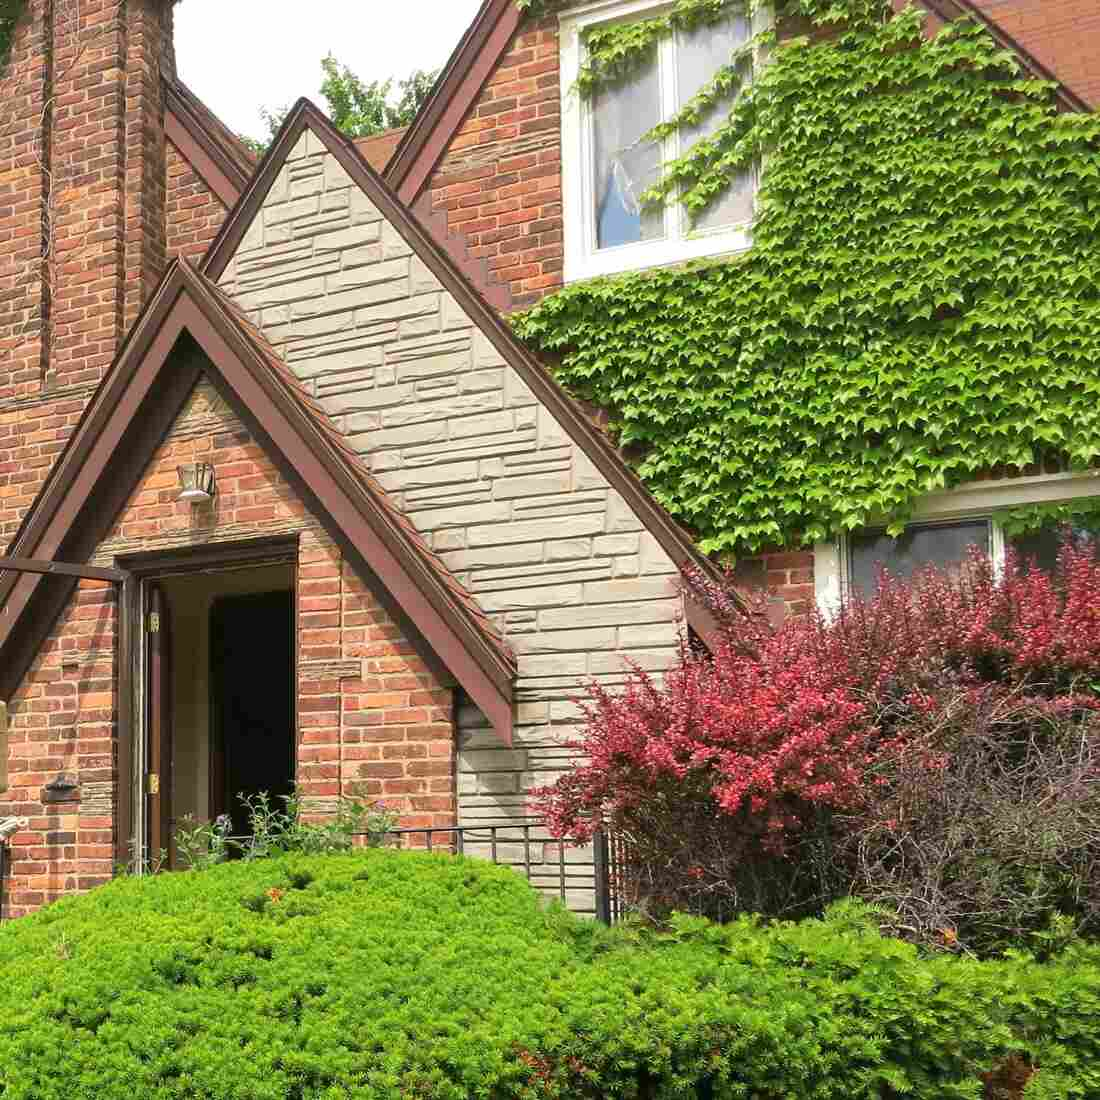 For Sale: Detroit Land Bank Seeks Buyers For Vacant Houses